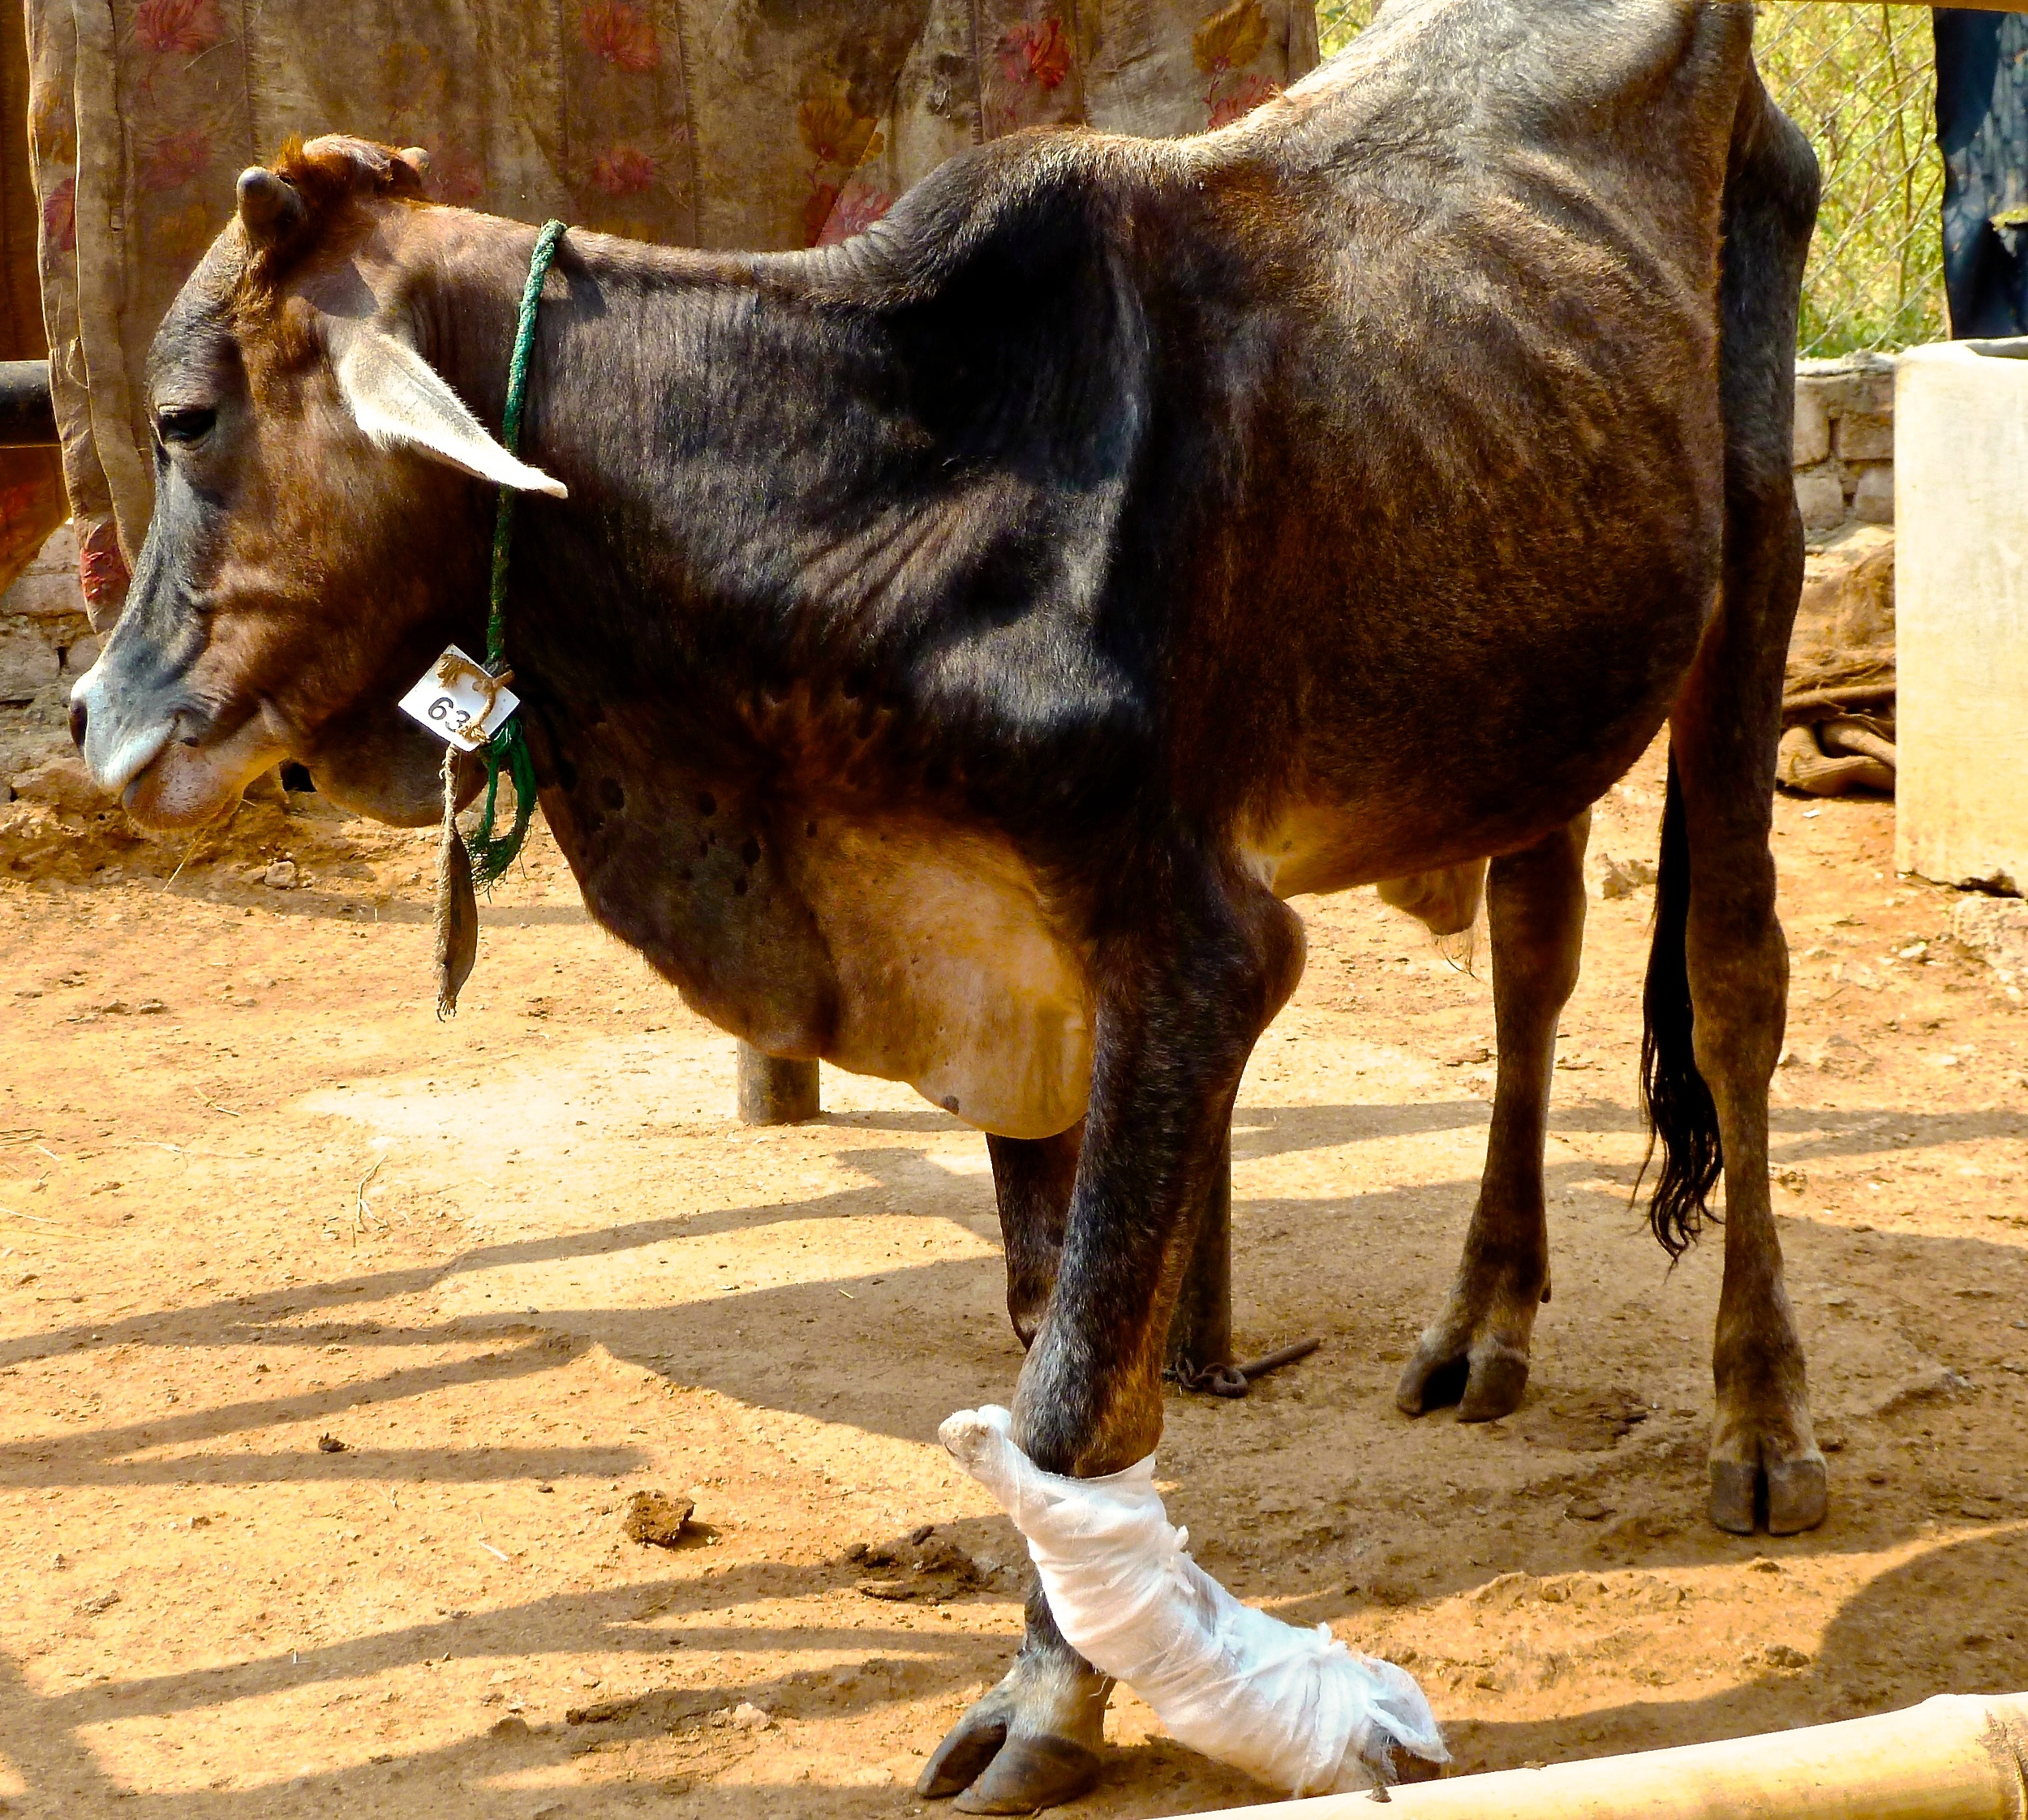 The sacred animal of India endures a painful fracture